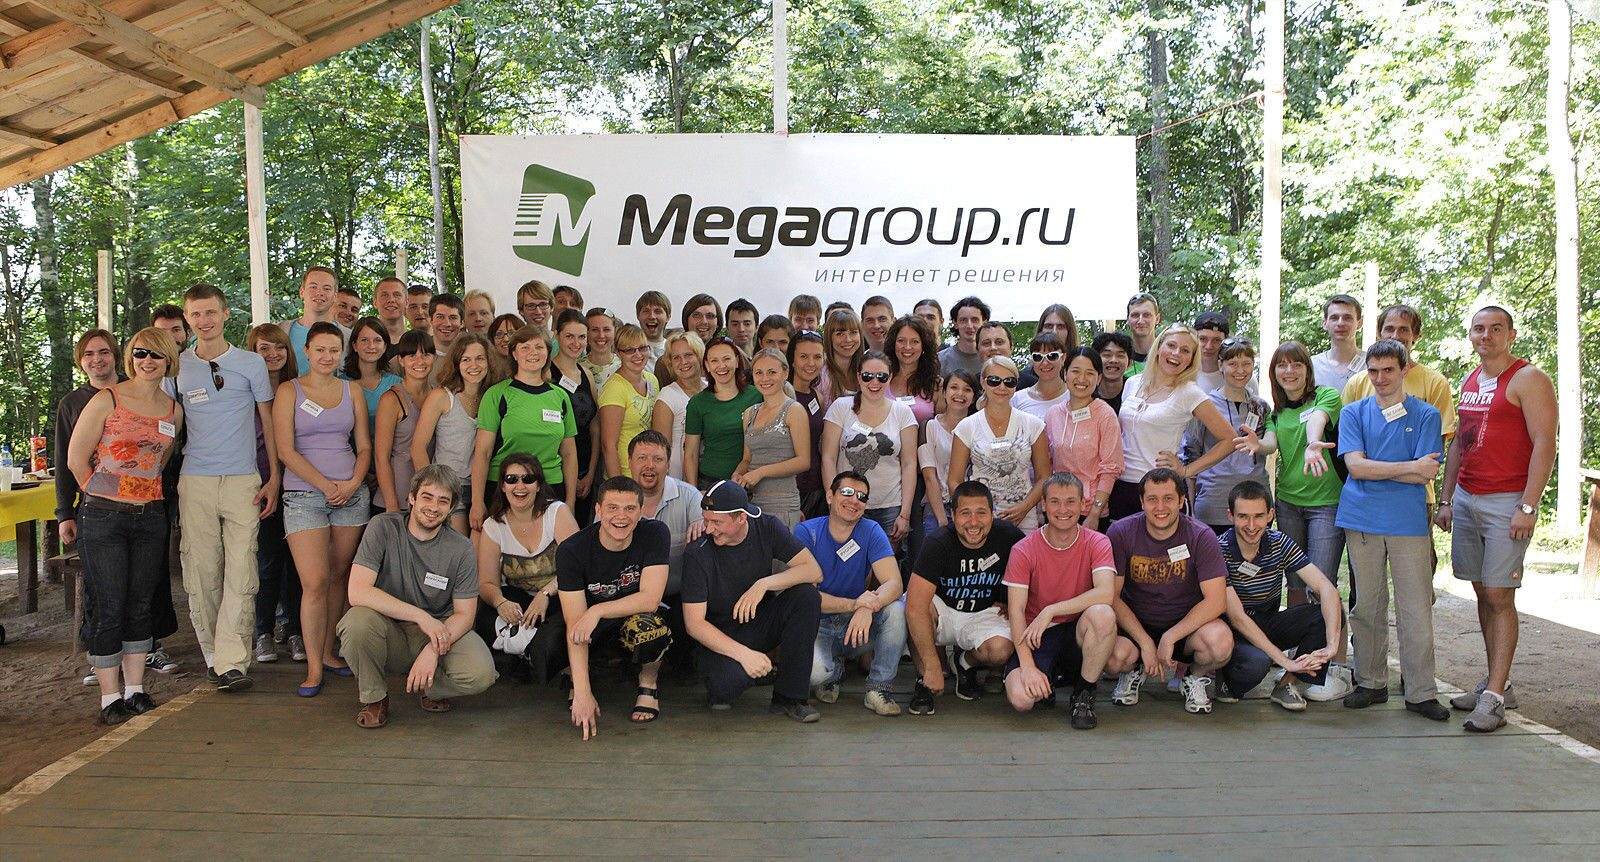 Тимбилдинг Megagroup.ru лето 2012